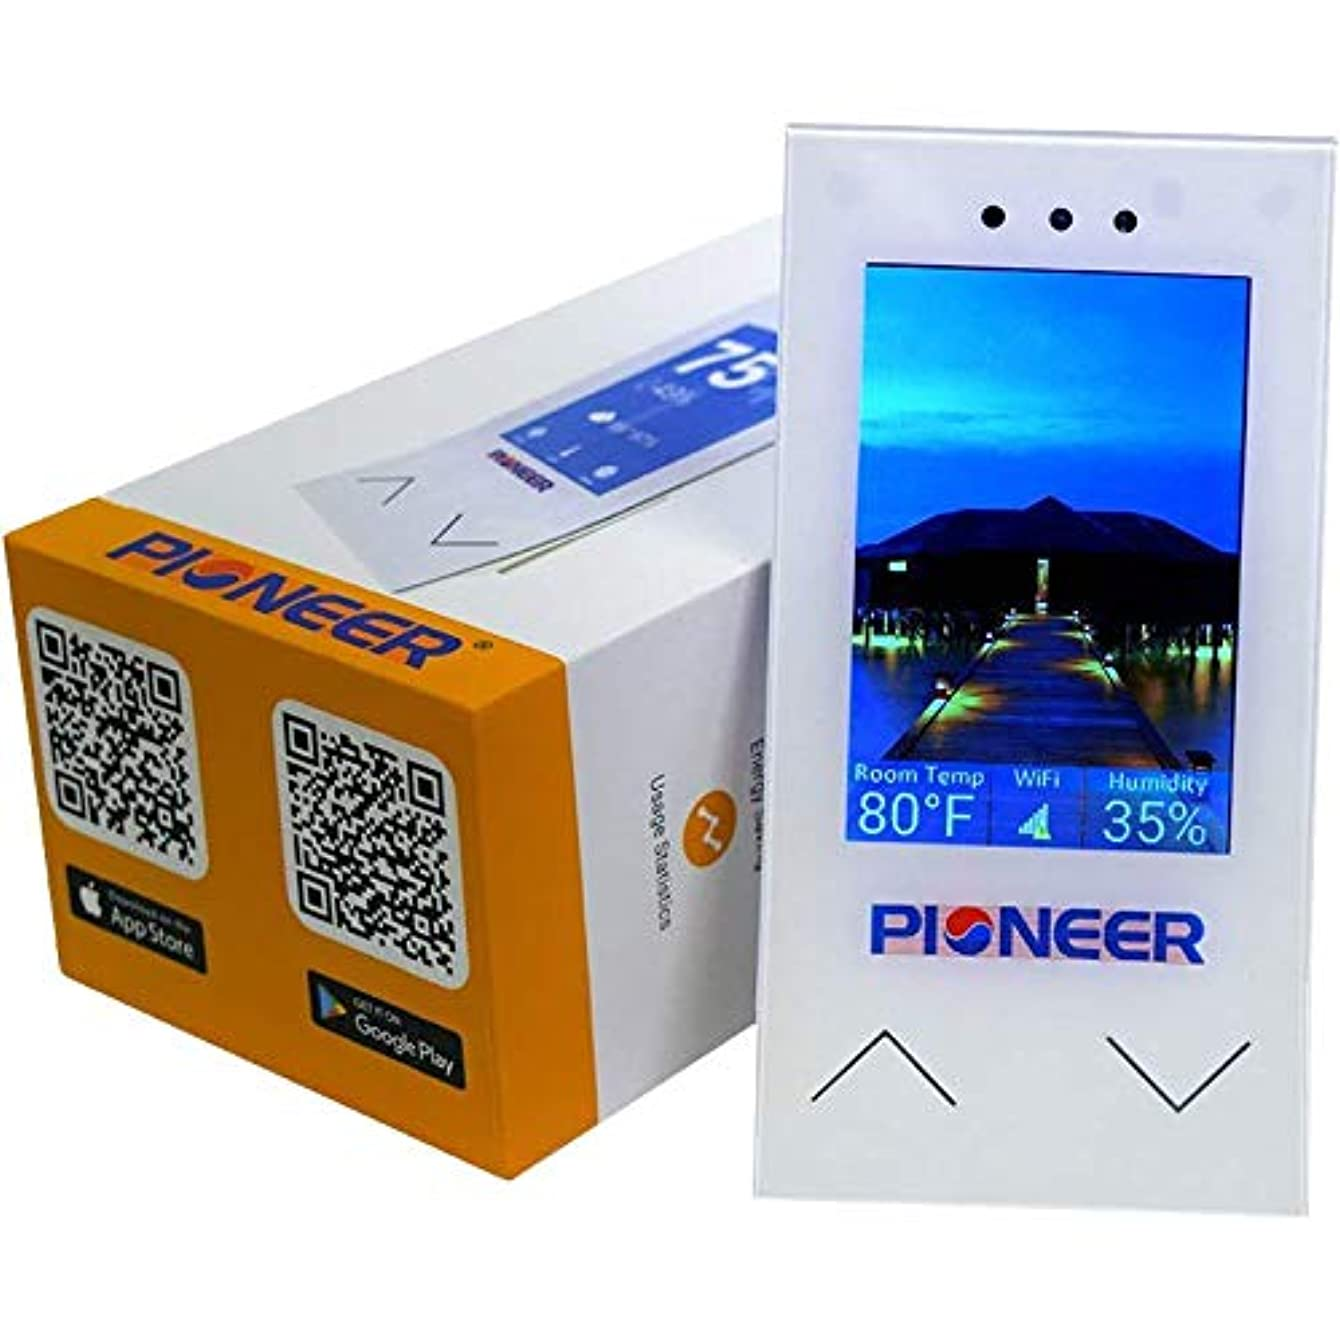 Pioneer Smart Controller for Air Conditioners, Wireless Internet Worldwide Access, Program, Control Module